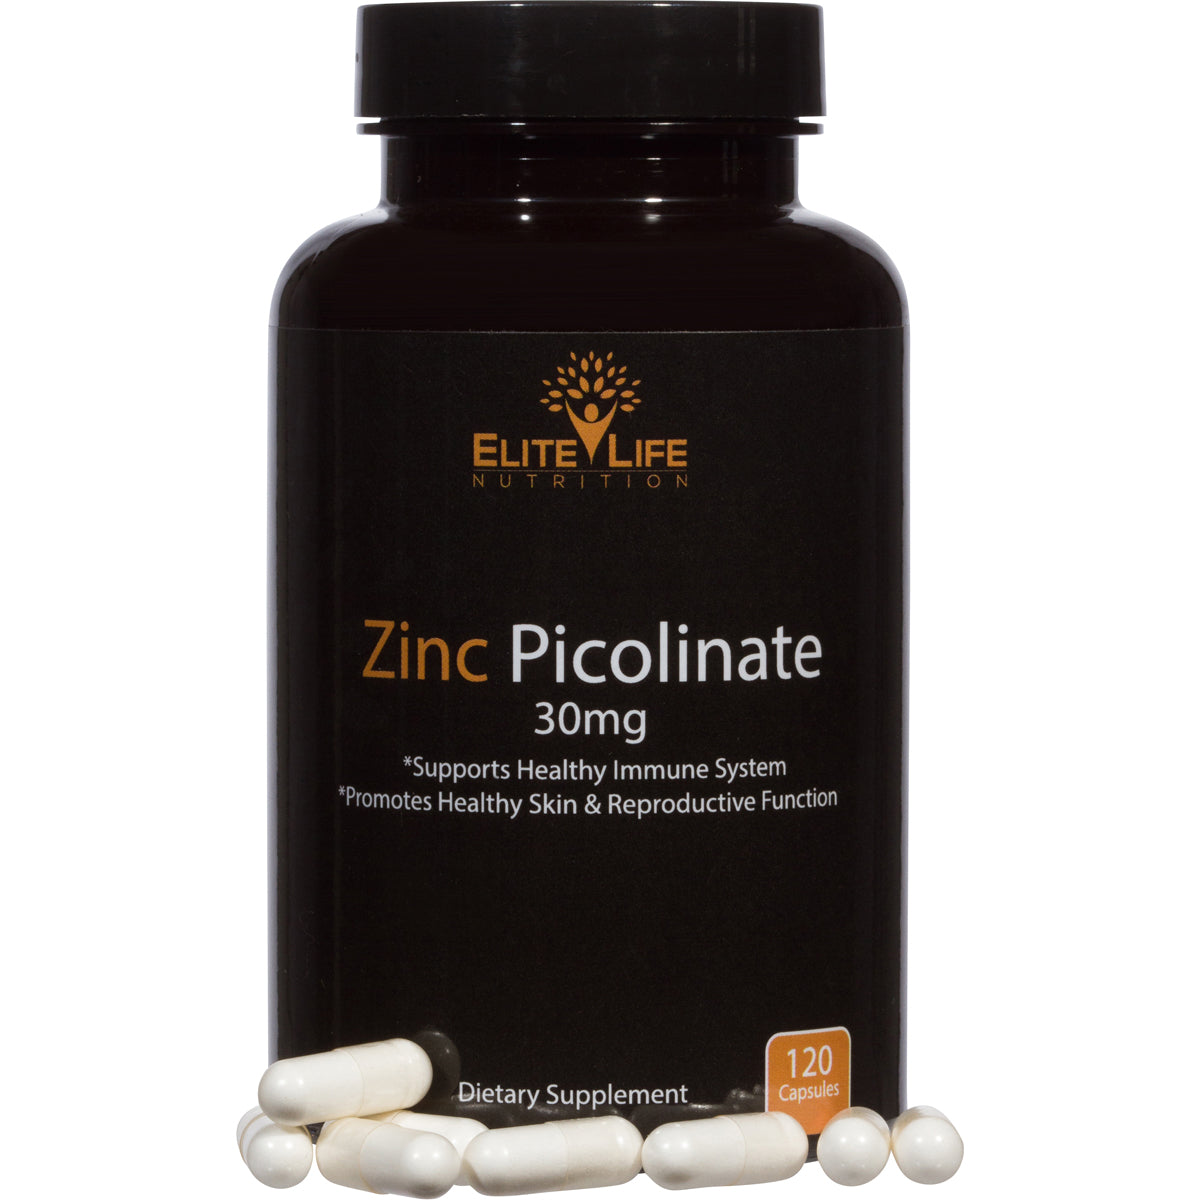 Free Bottle of Zinc